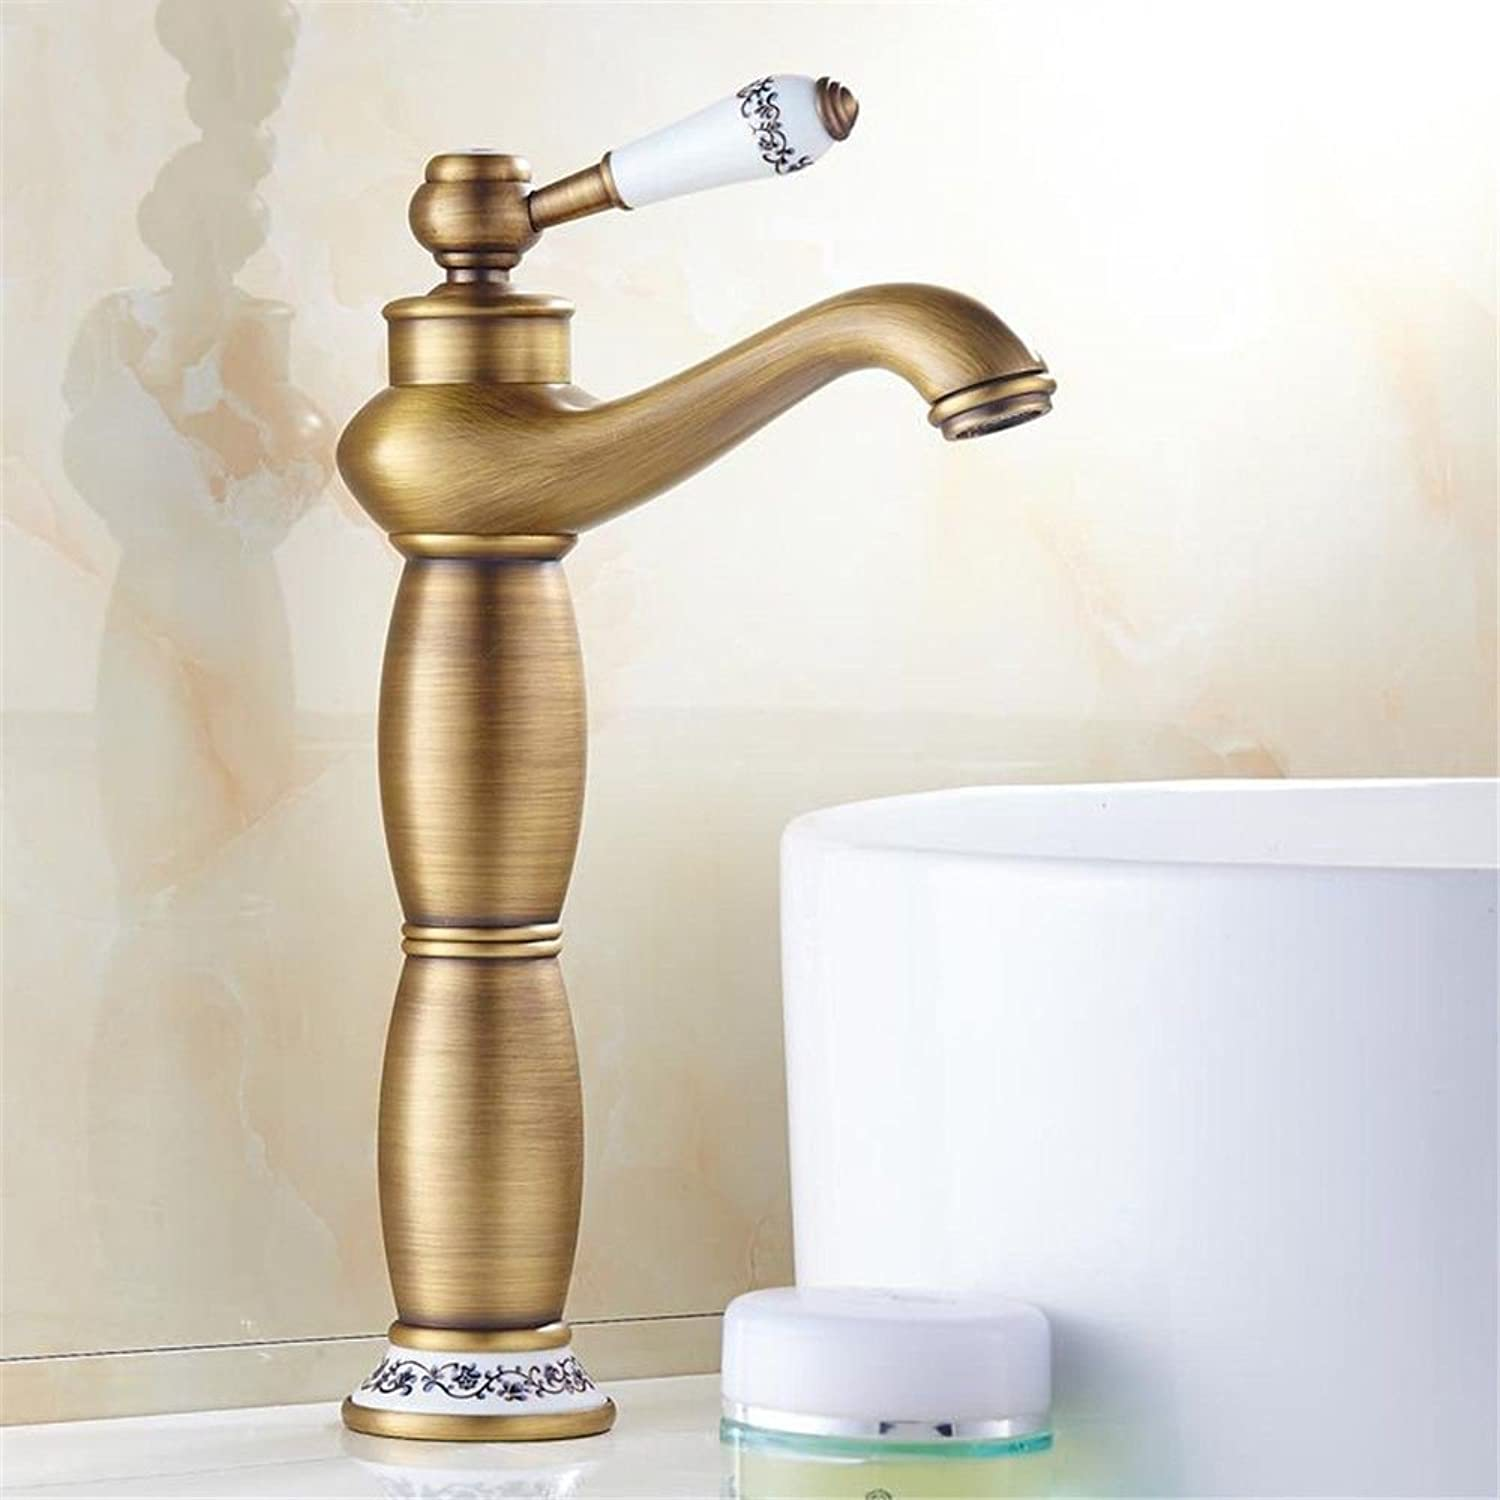 AQMMi Basin Taps Bathroom Sink Faucet Glass Waterfall Spout Hot and Cold Water Wash Basin Bathroom Sink Faucet Basin Mixer Tap Janitorial & Sanitation Supplies Commercial Bathroom Sink Taps